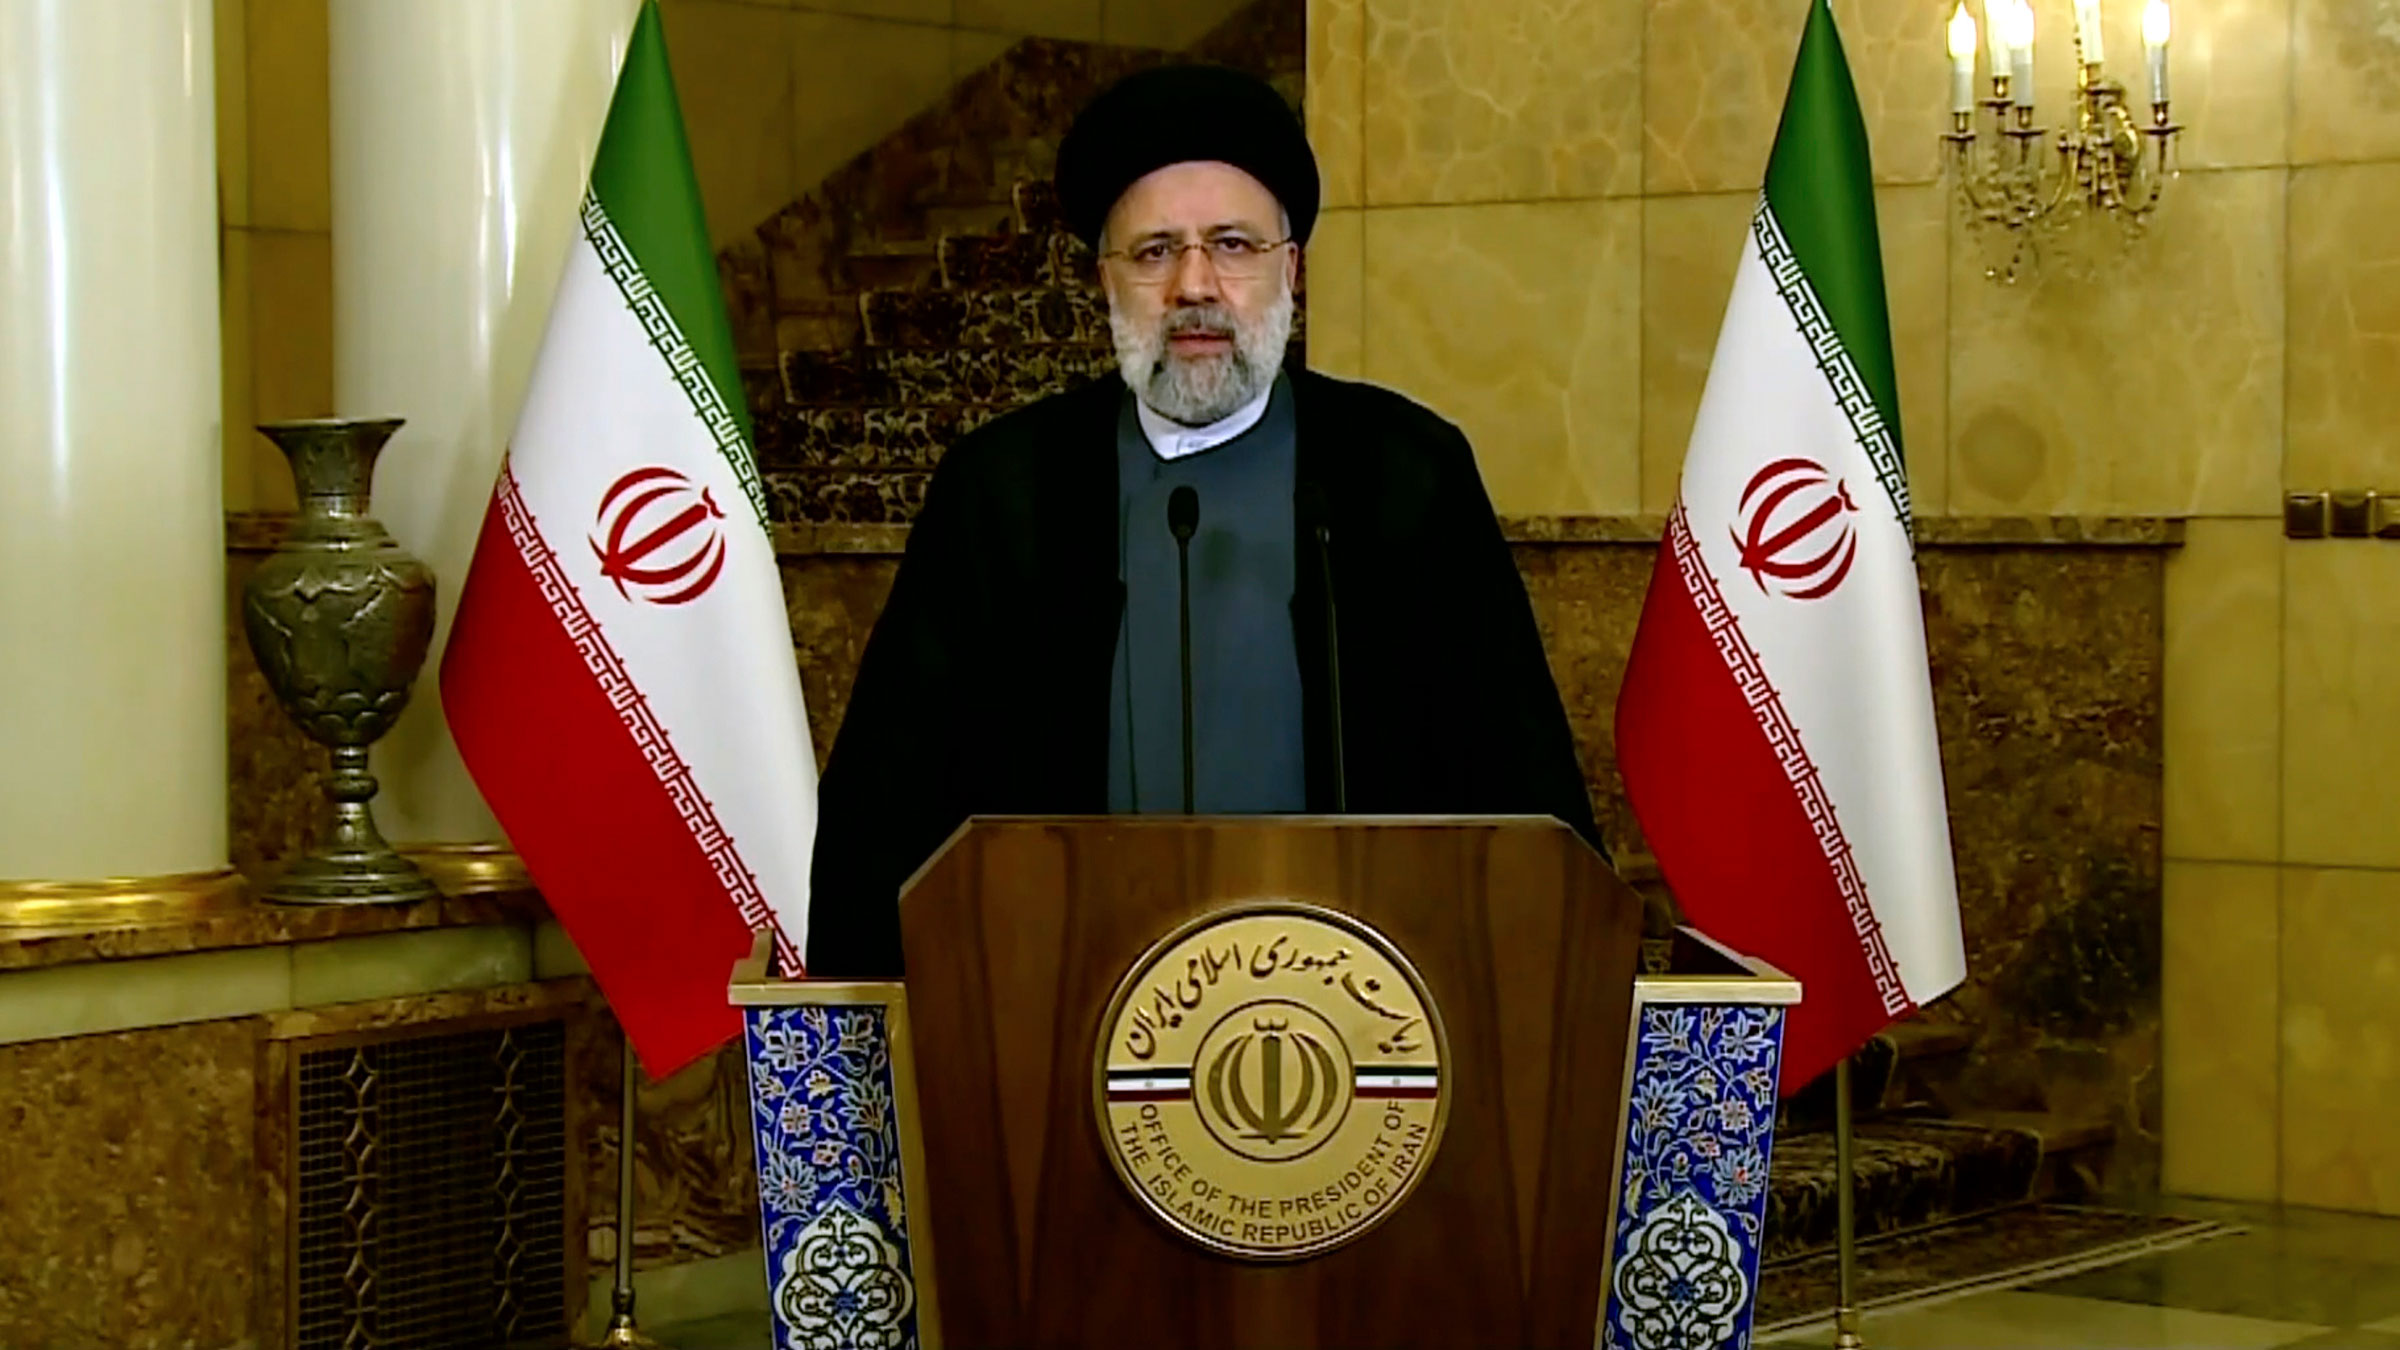 In this image taken from video, Iranian President Ebrahim Raisi remotely addresses the General Assembly on Tuesday.